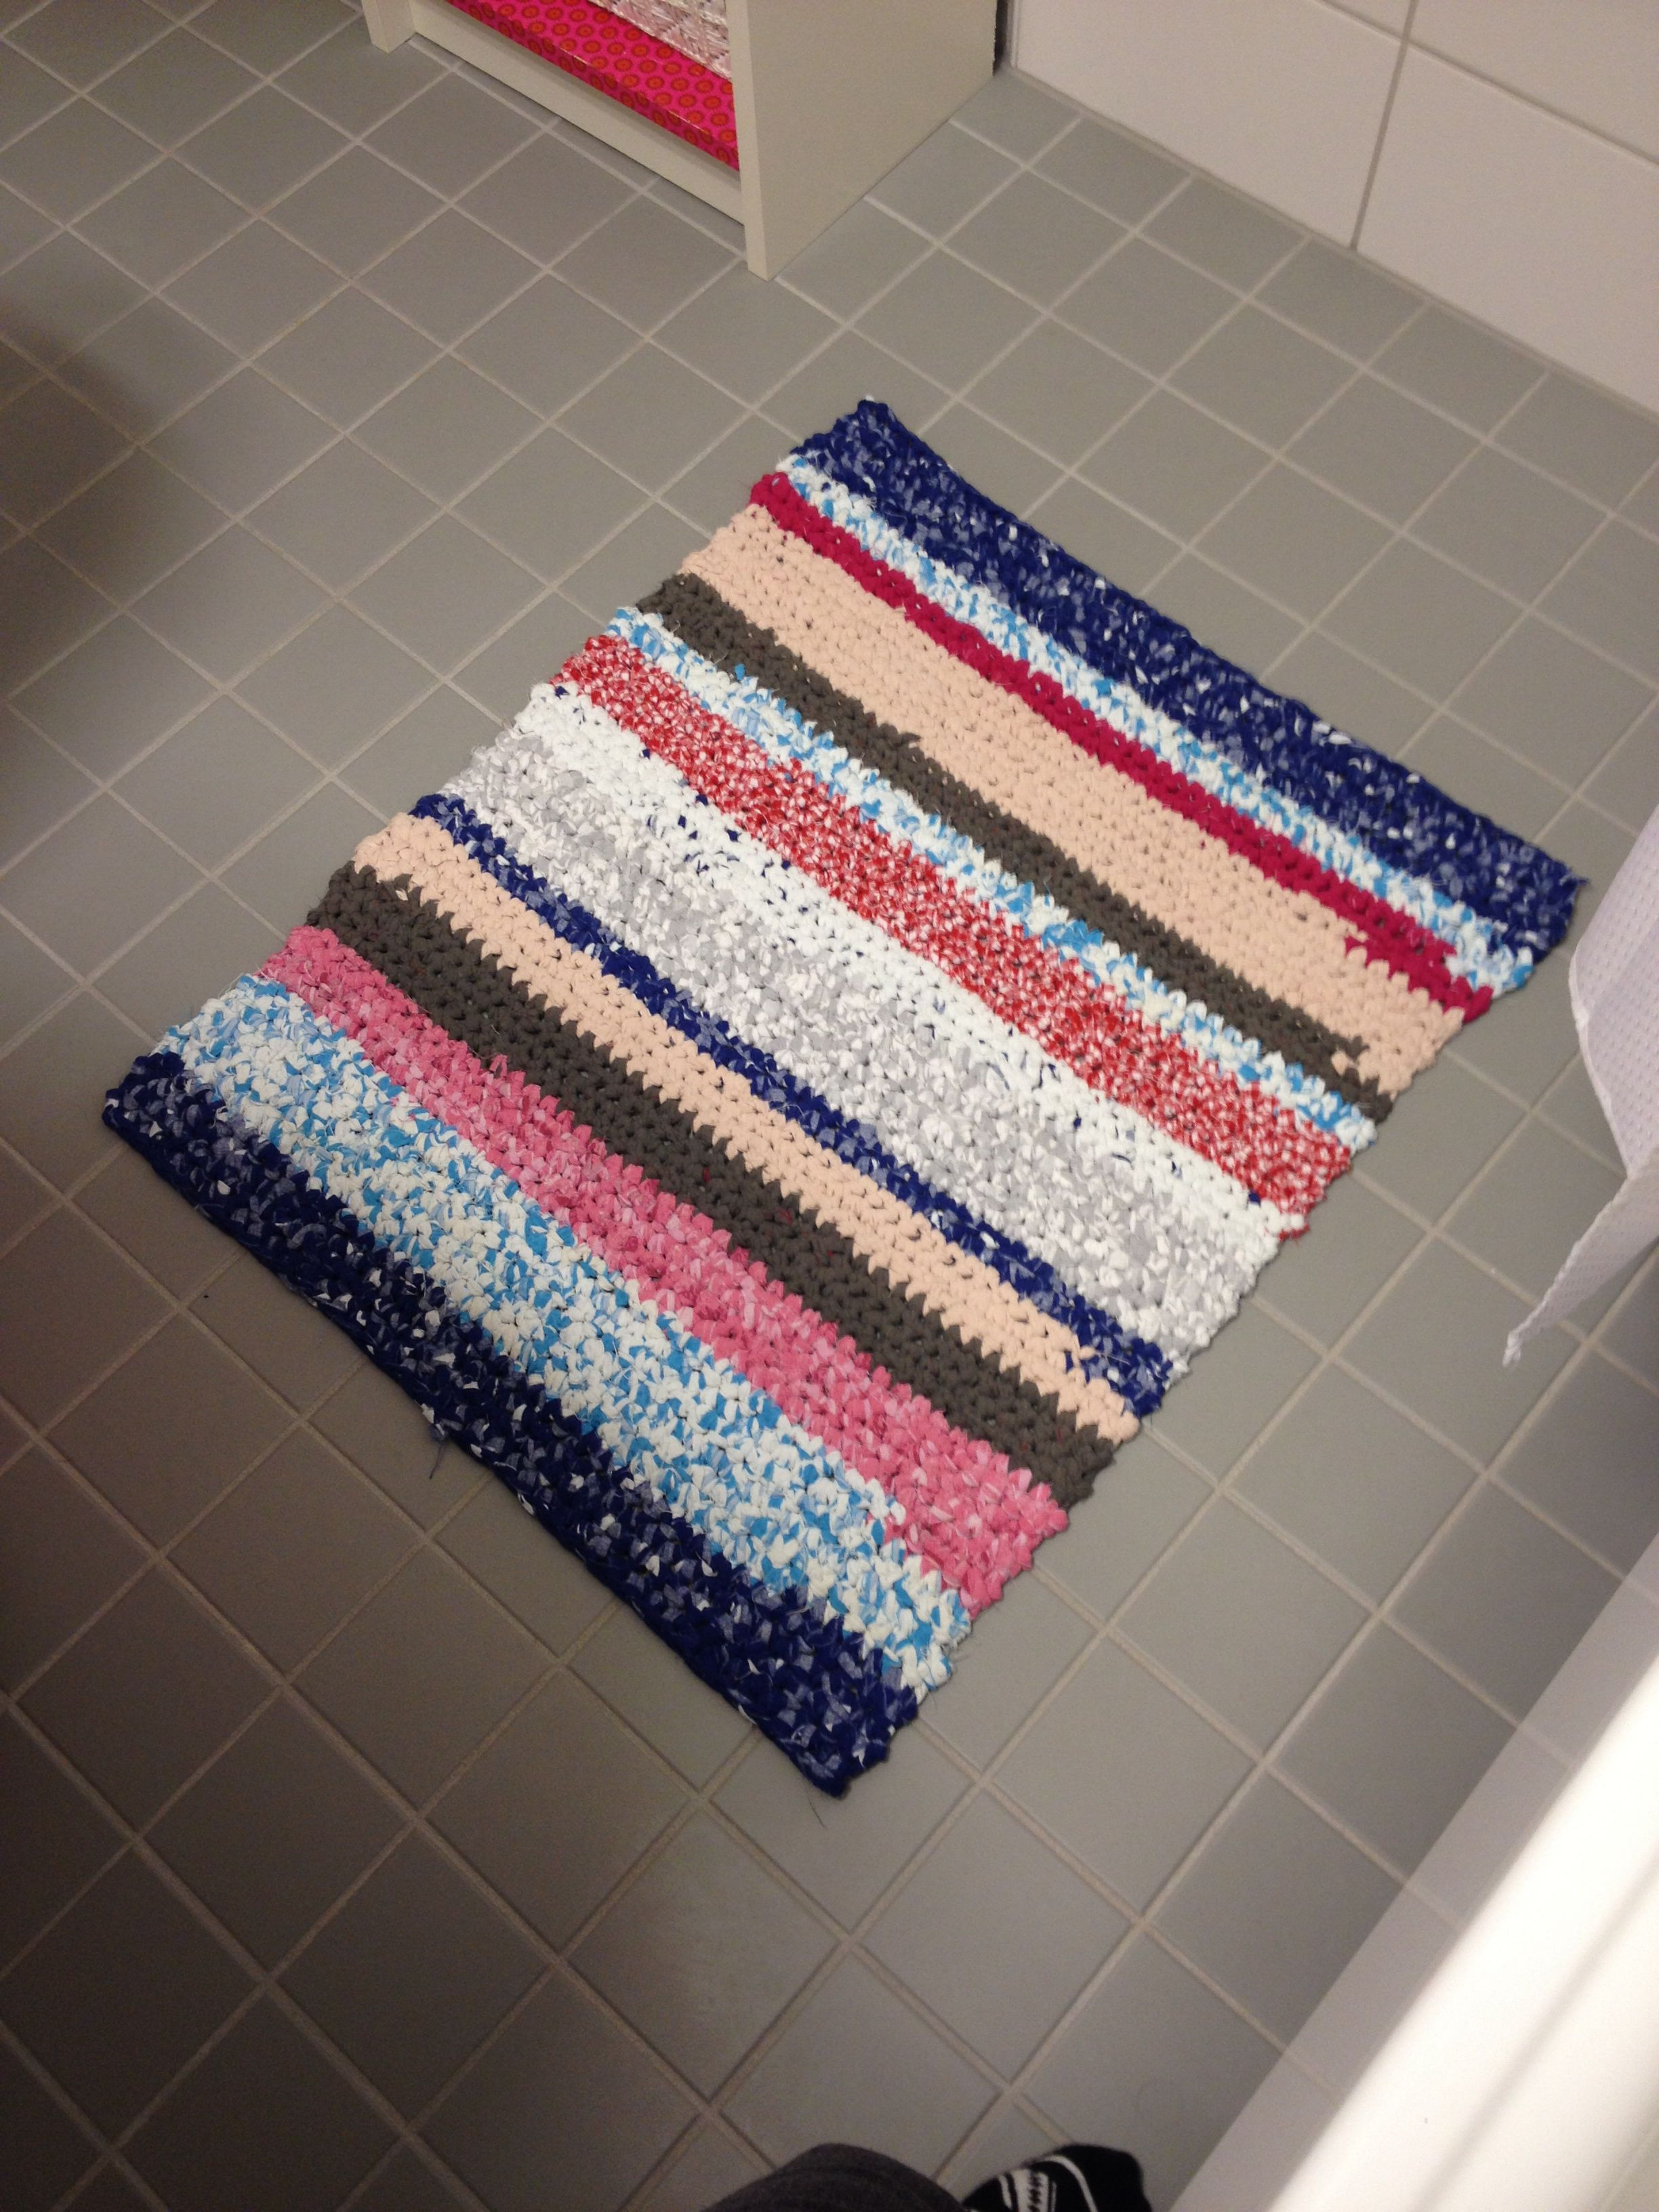 Book Crochet Bath Rugs In Germany By Noah